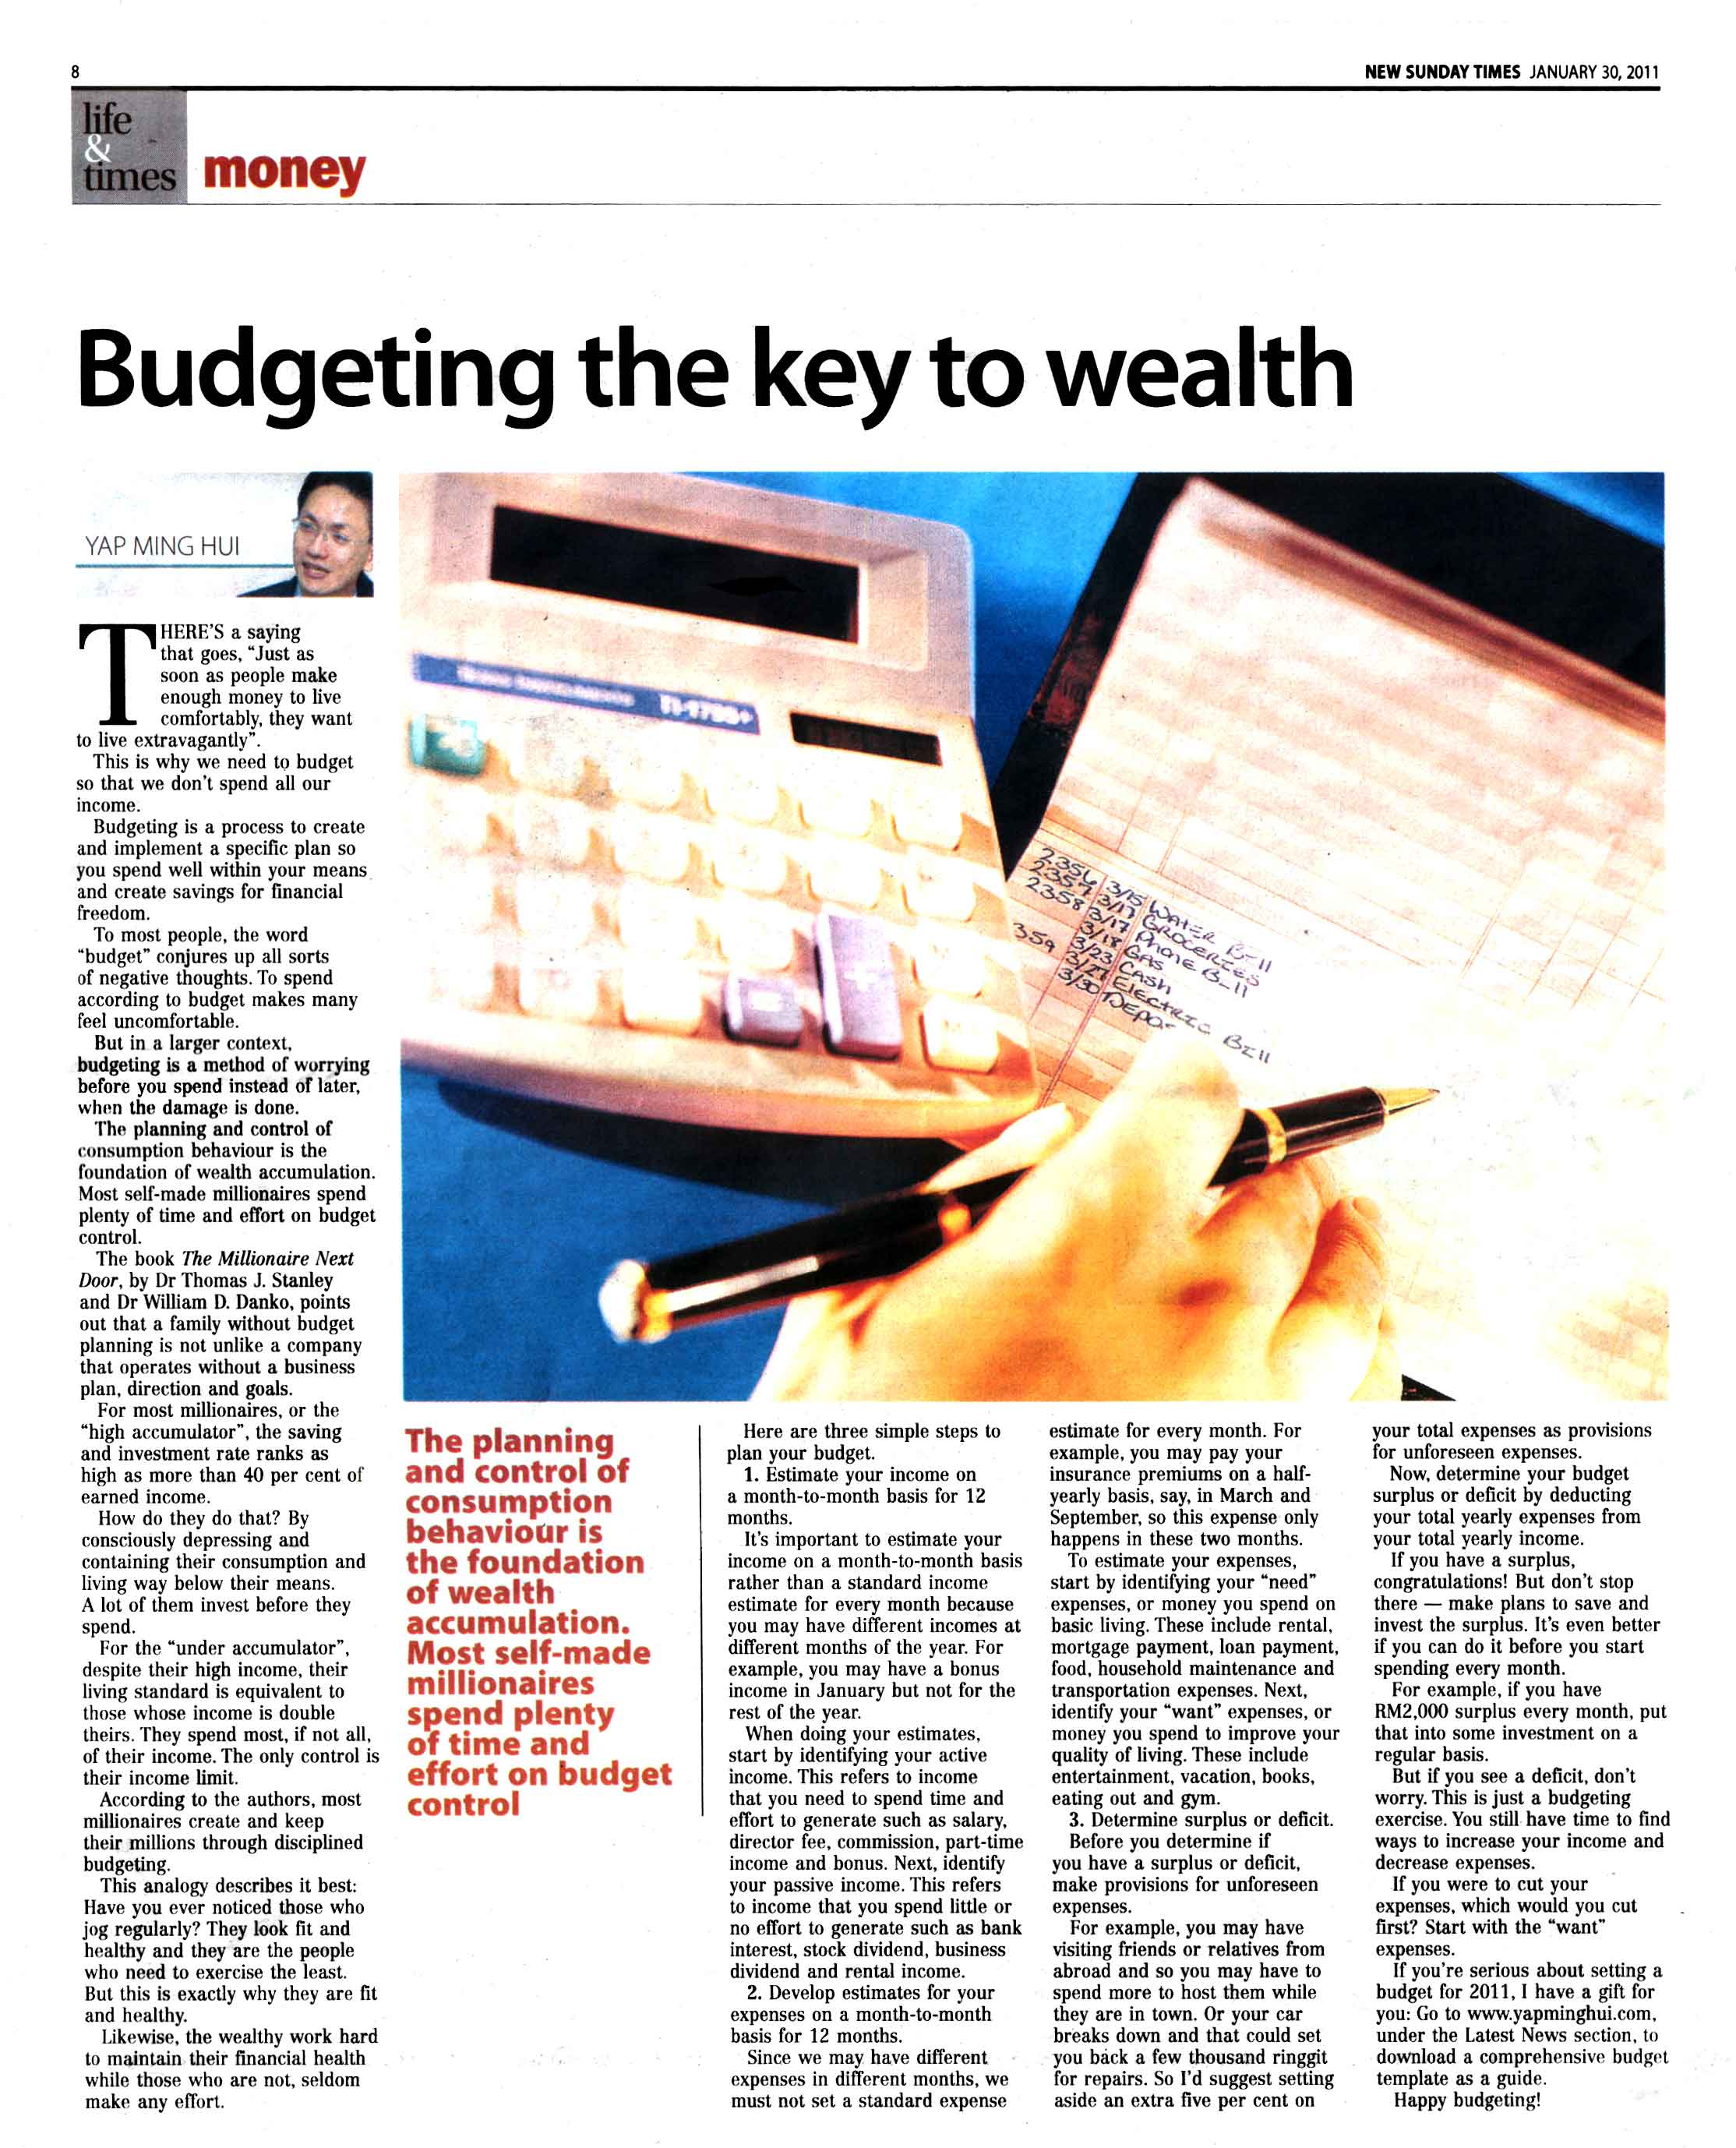 Budgeting the Key to Wealth (New Straits Times) - 30 January 2011 - 30 Jan 2011